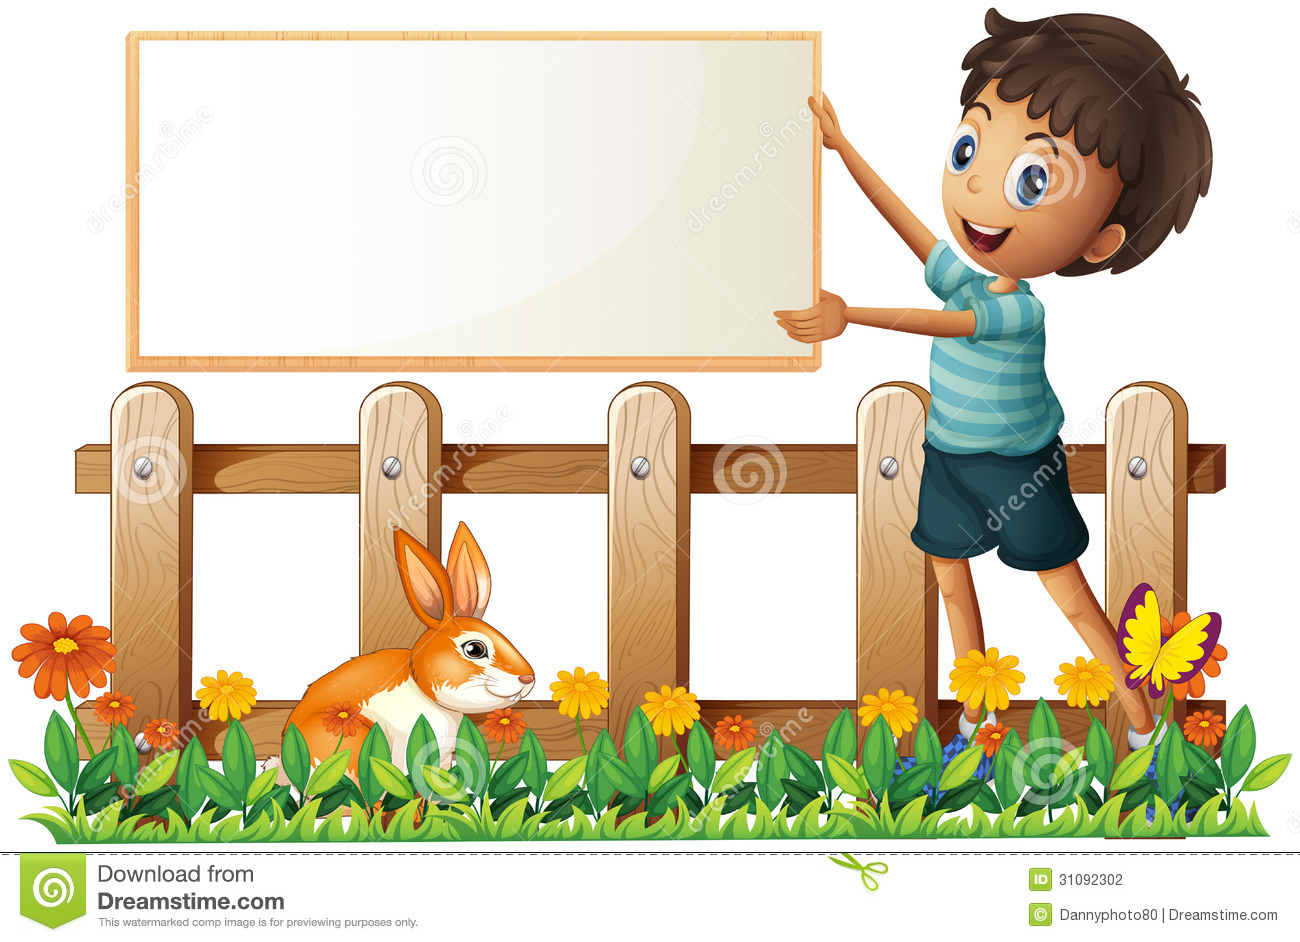 Fence clipart child garden #8